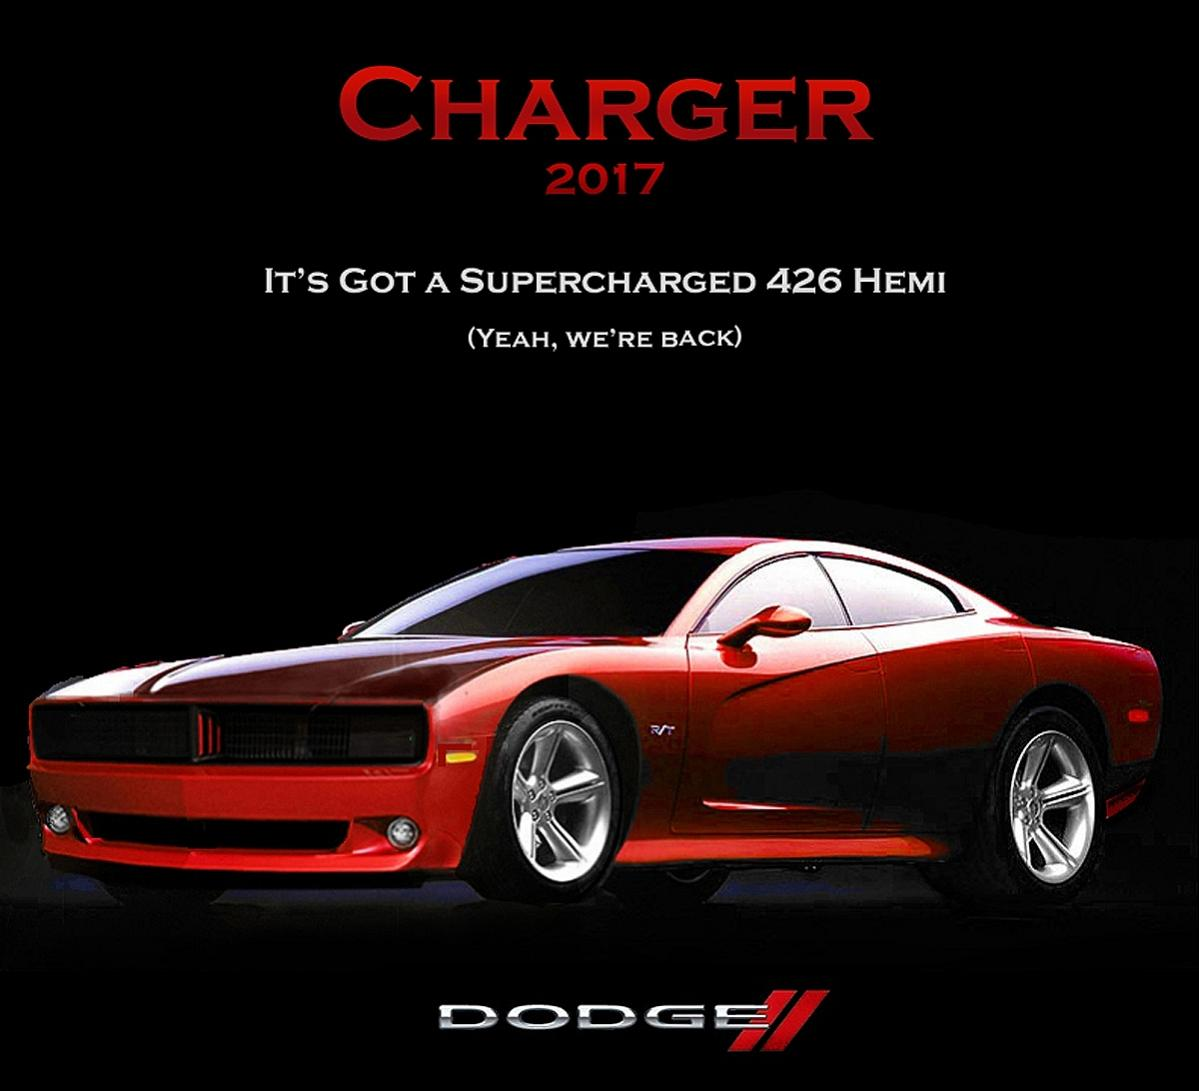 dodge charger 2015 dodge charger 2012 dodge charger srt8 dodge charger ...